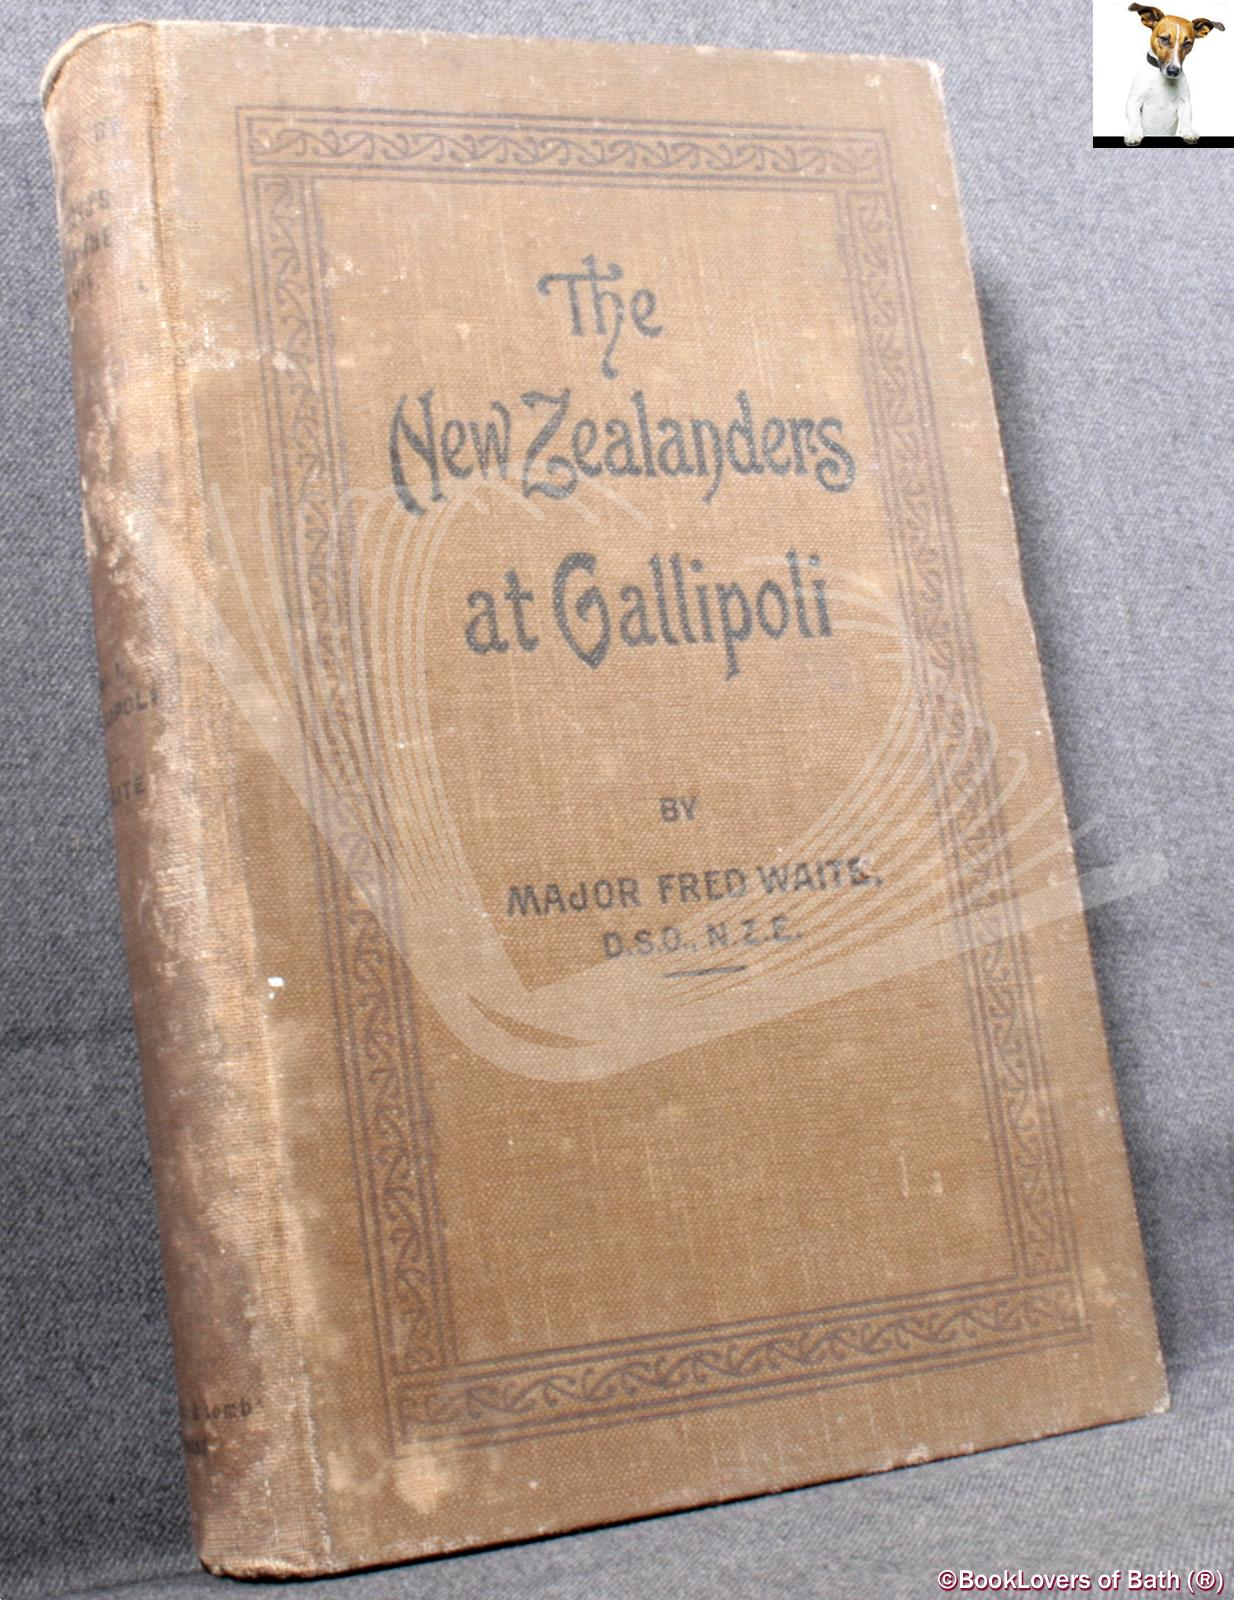 The New Zealanders at Gallipoli - Major Fred Waite